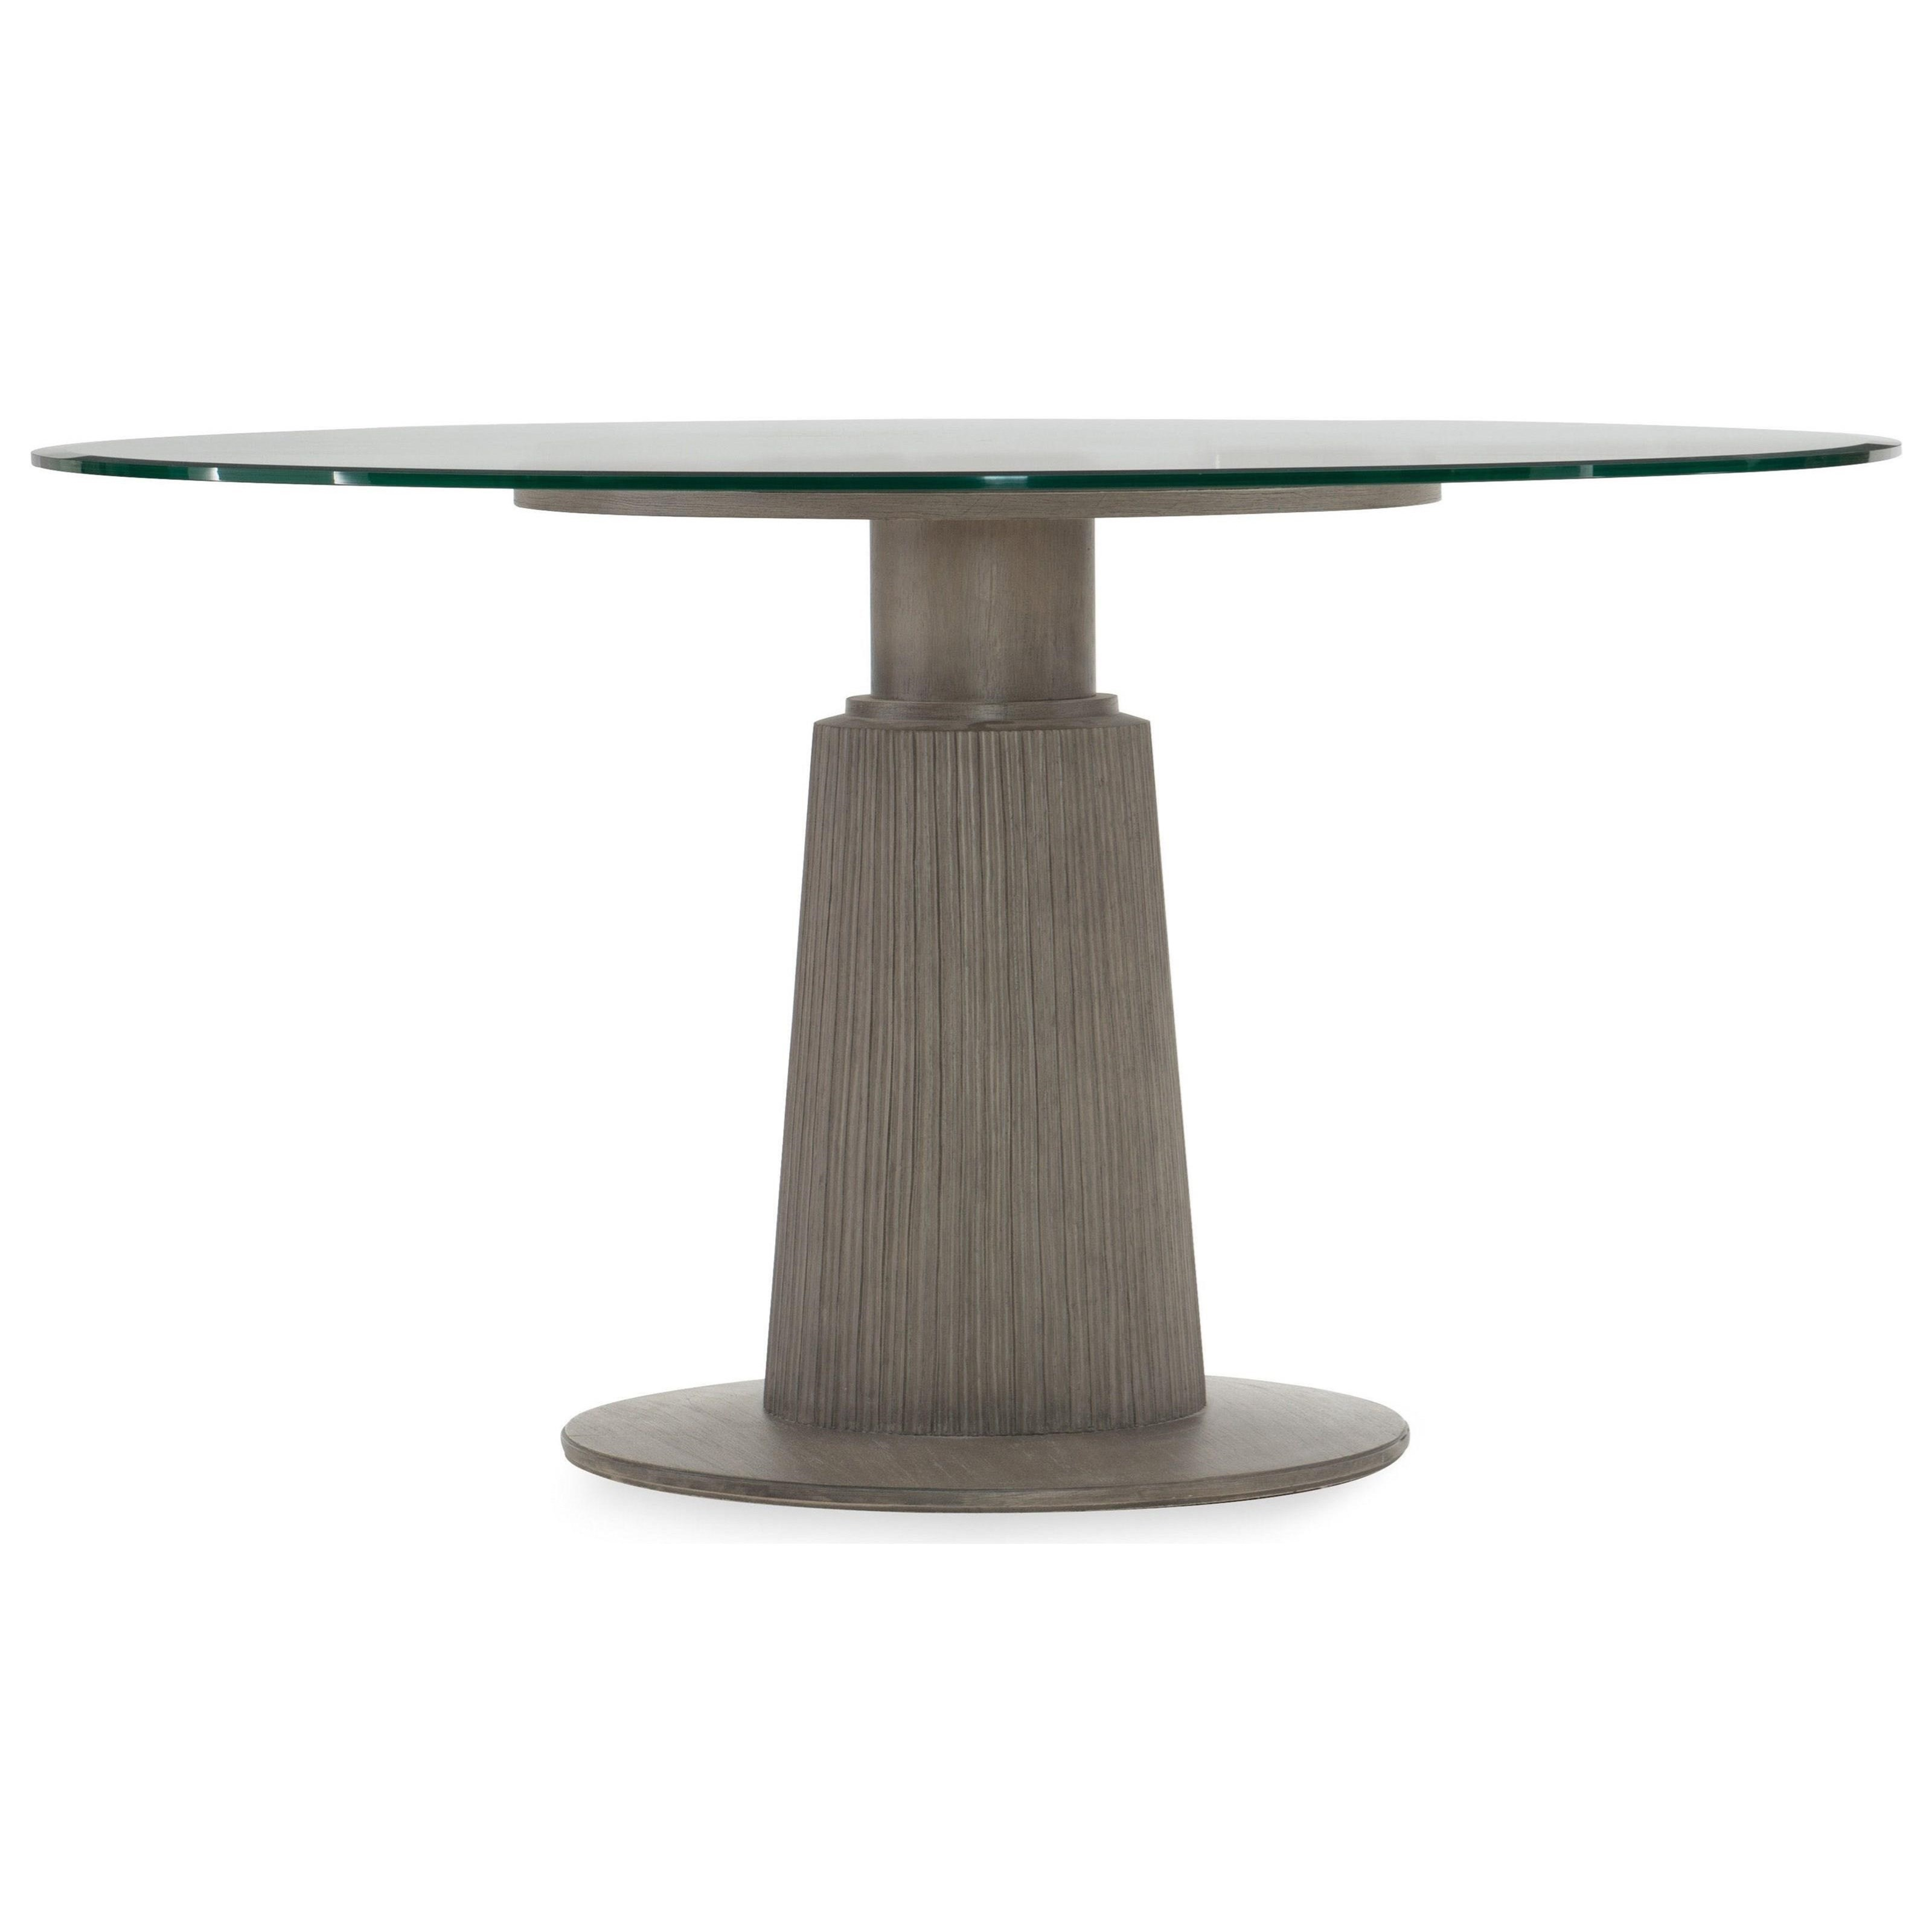 Adjustable Height Round Table.Elixir 48 Adjustable Height Round Dining Table By Hooker Furniture At Stoney Creek Furniture